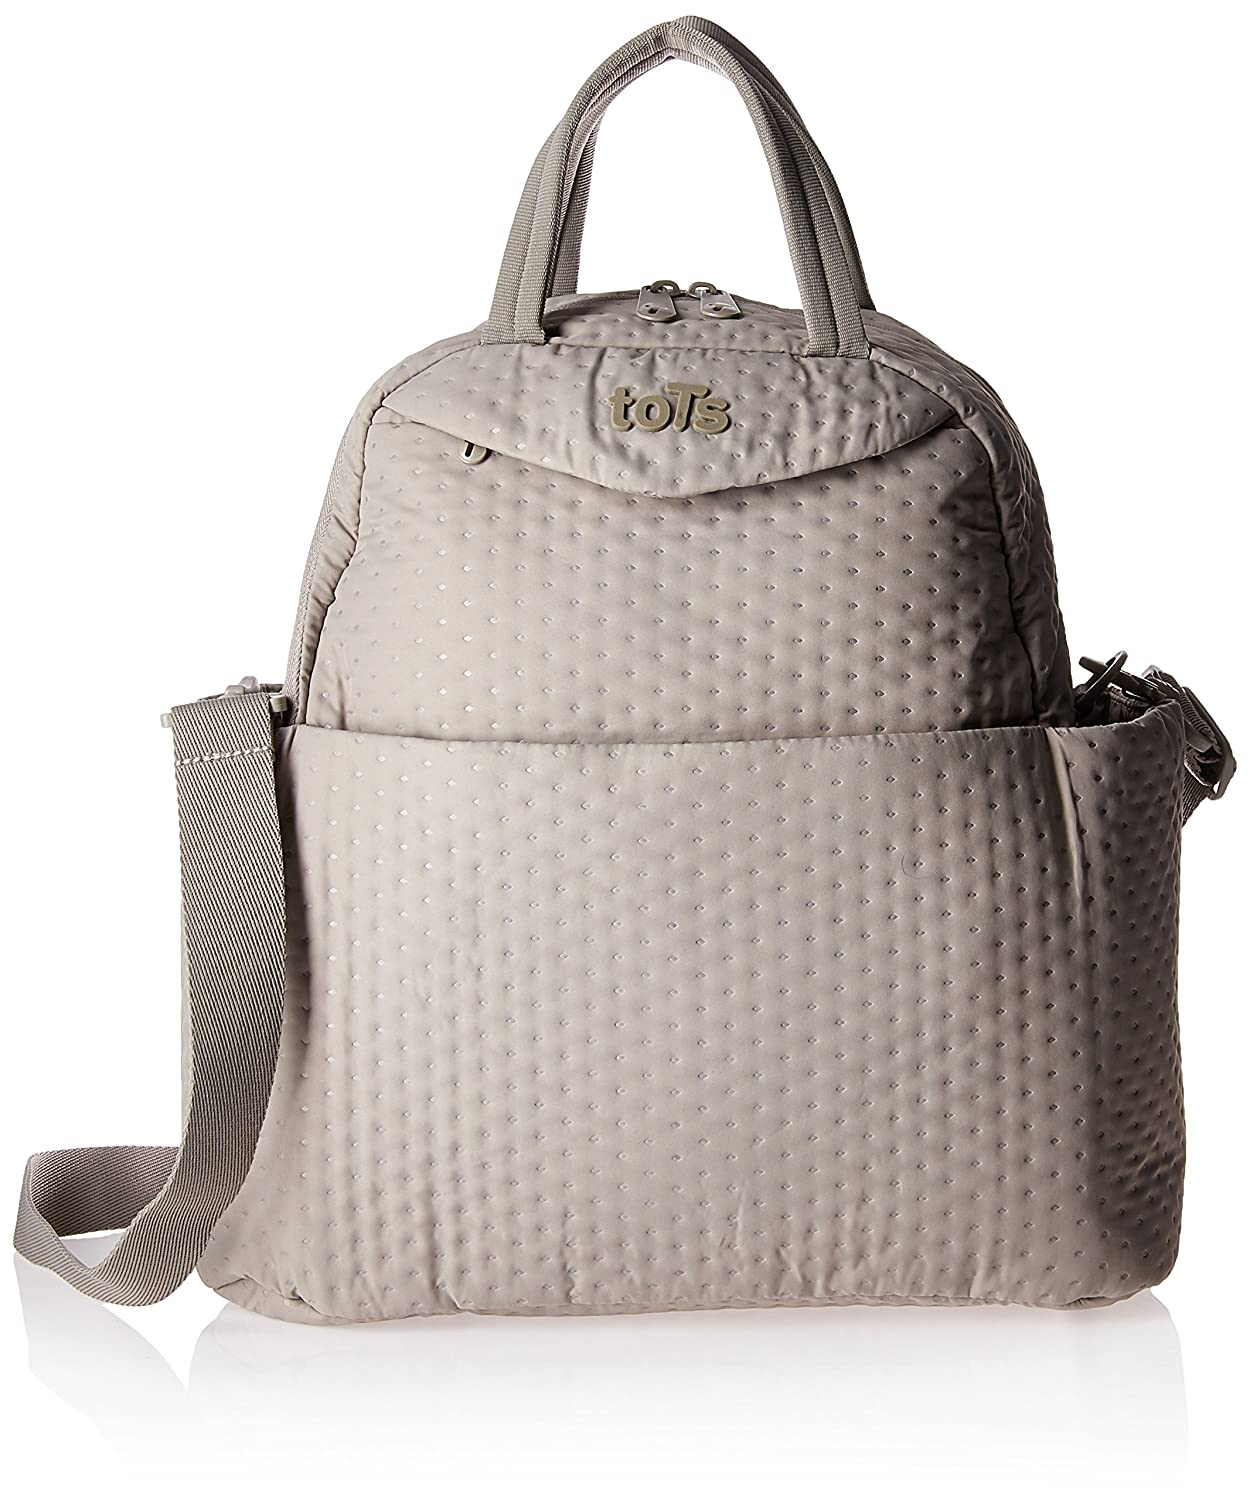 ToTs by Smartrike 100-202/Infinity Changing Bag 38/x 18/x 38/cm Beige Quilted